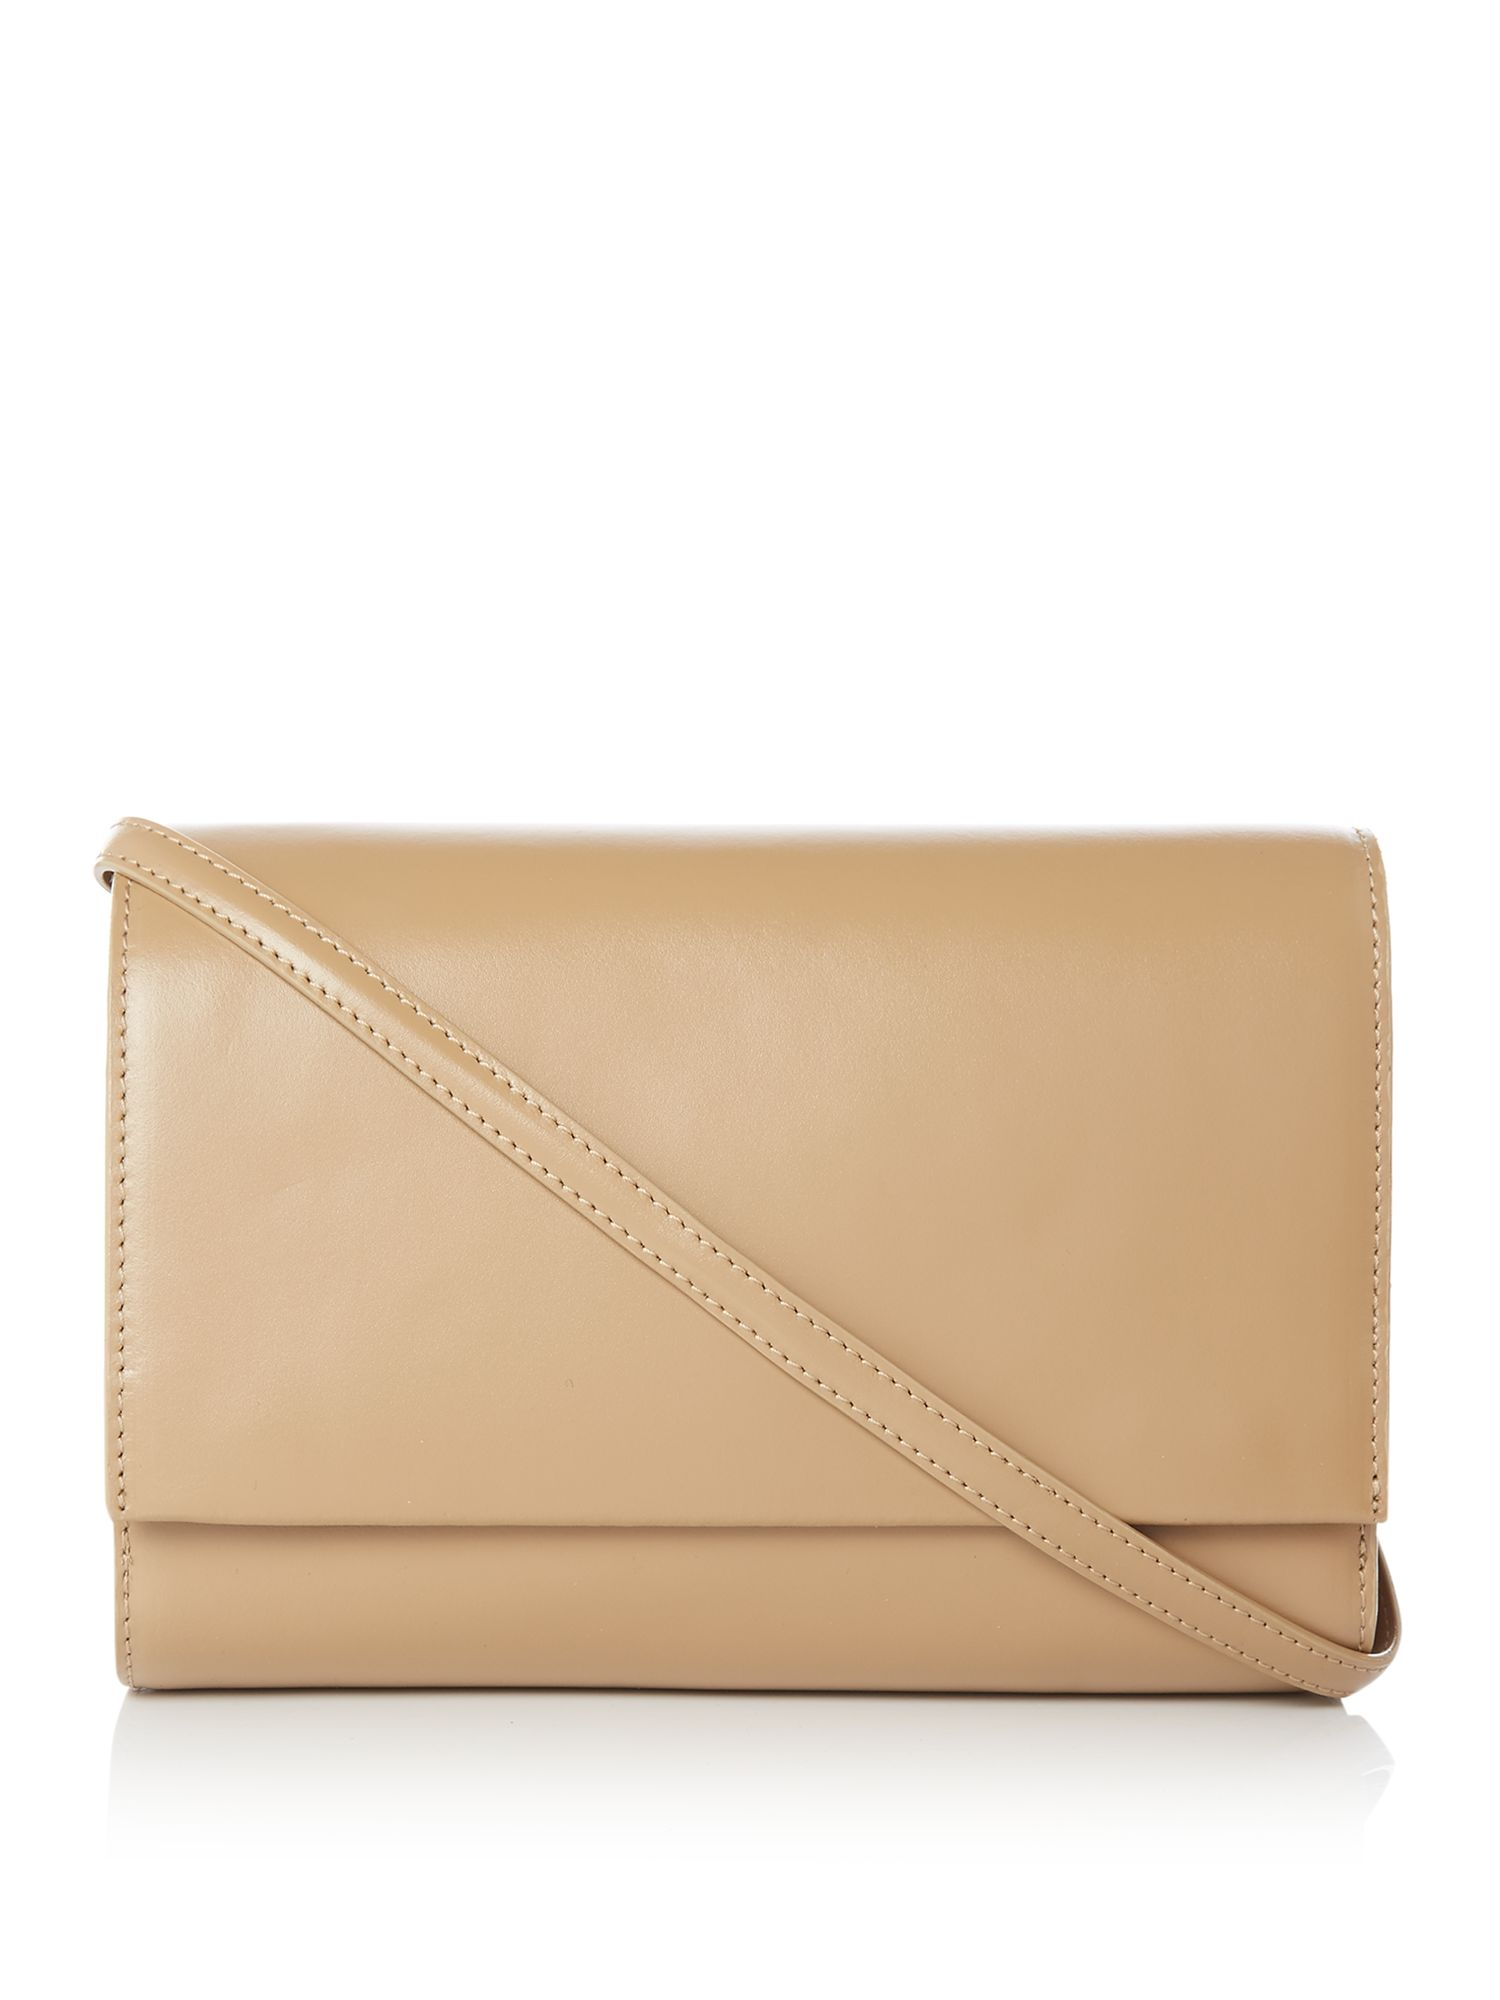 Linea Adele Leather Shoulder Bag, Camel